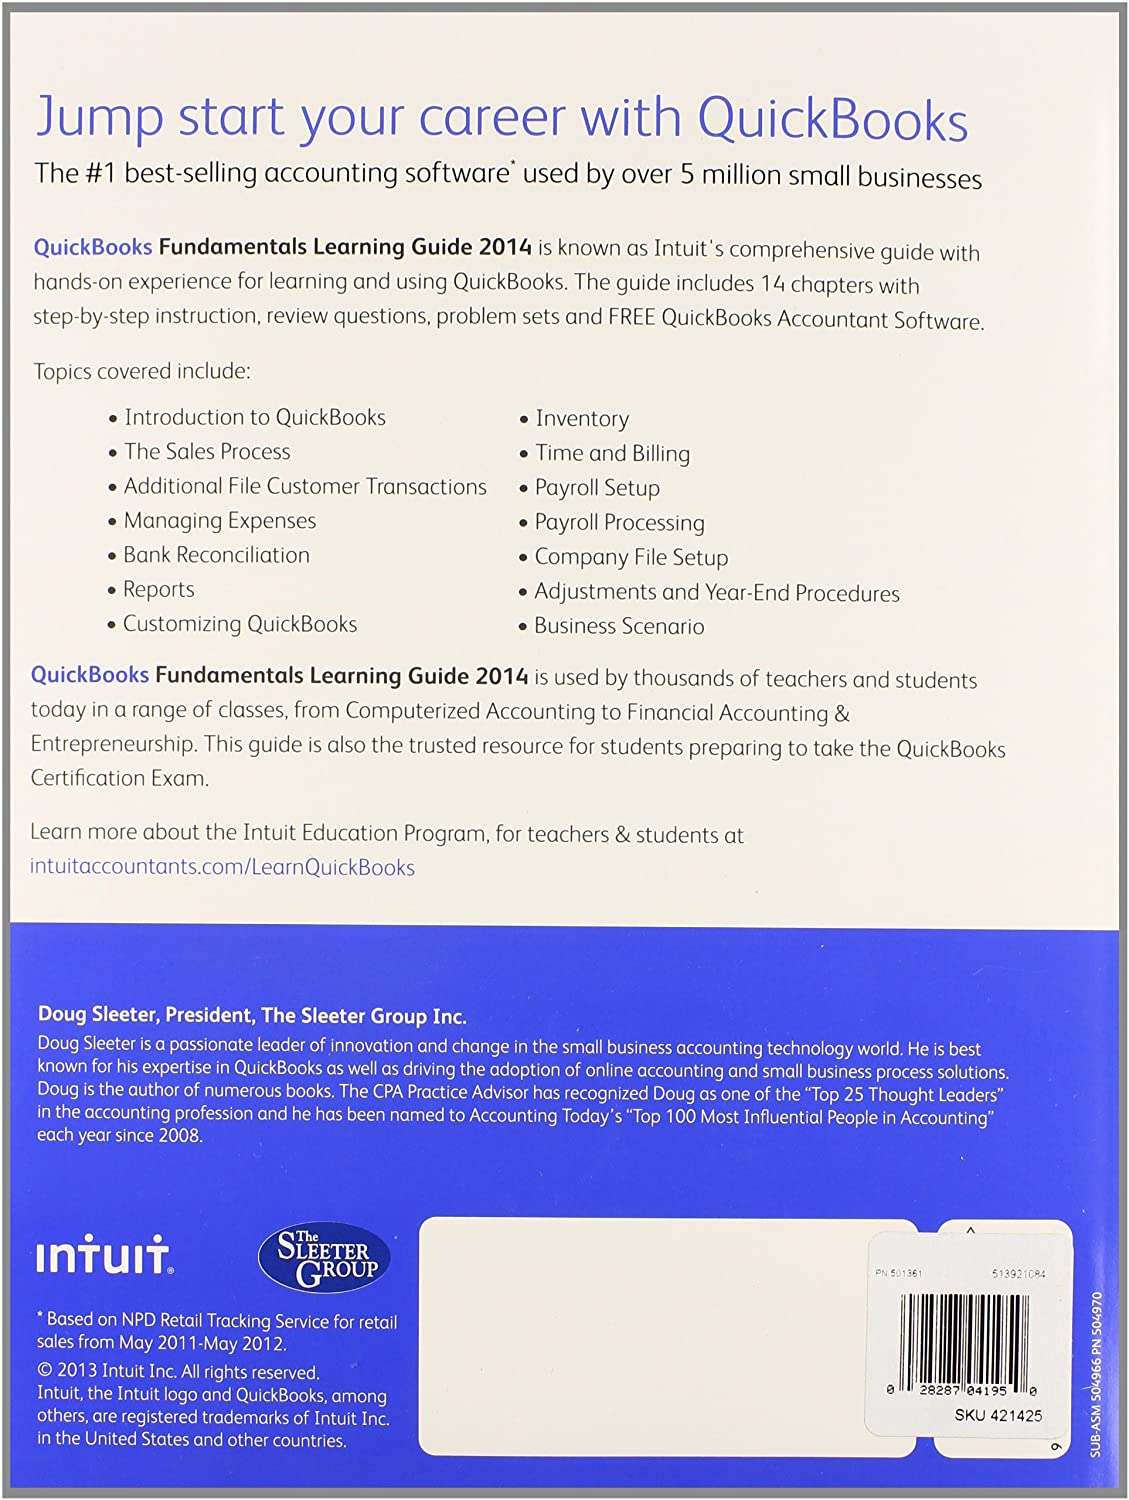 amazon com quickbooks fundamental learning guide 2014 with rh amazon com quickbooks fundamentals learning guide 2014 QuickBooks Part 1